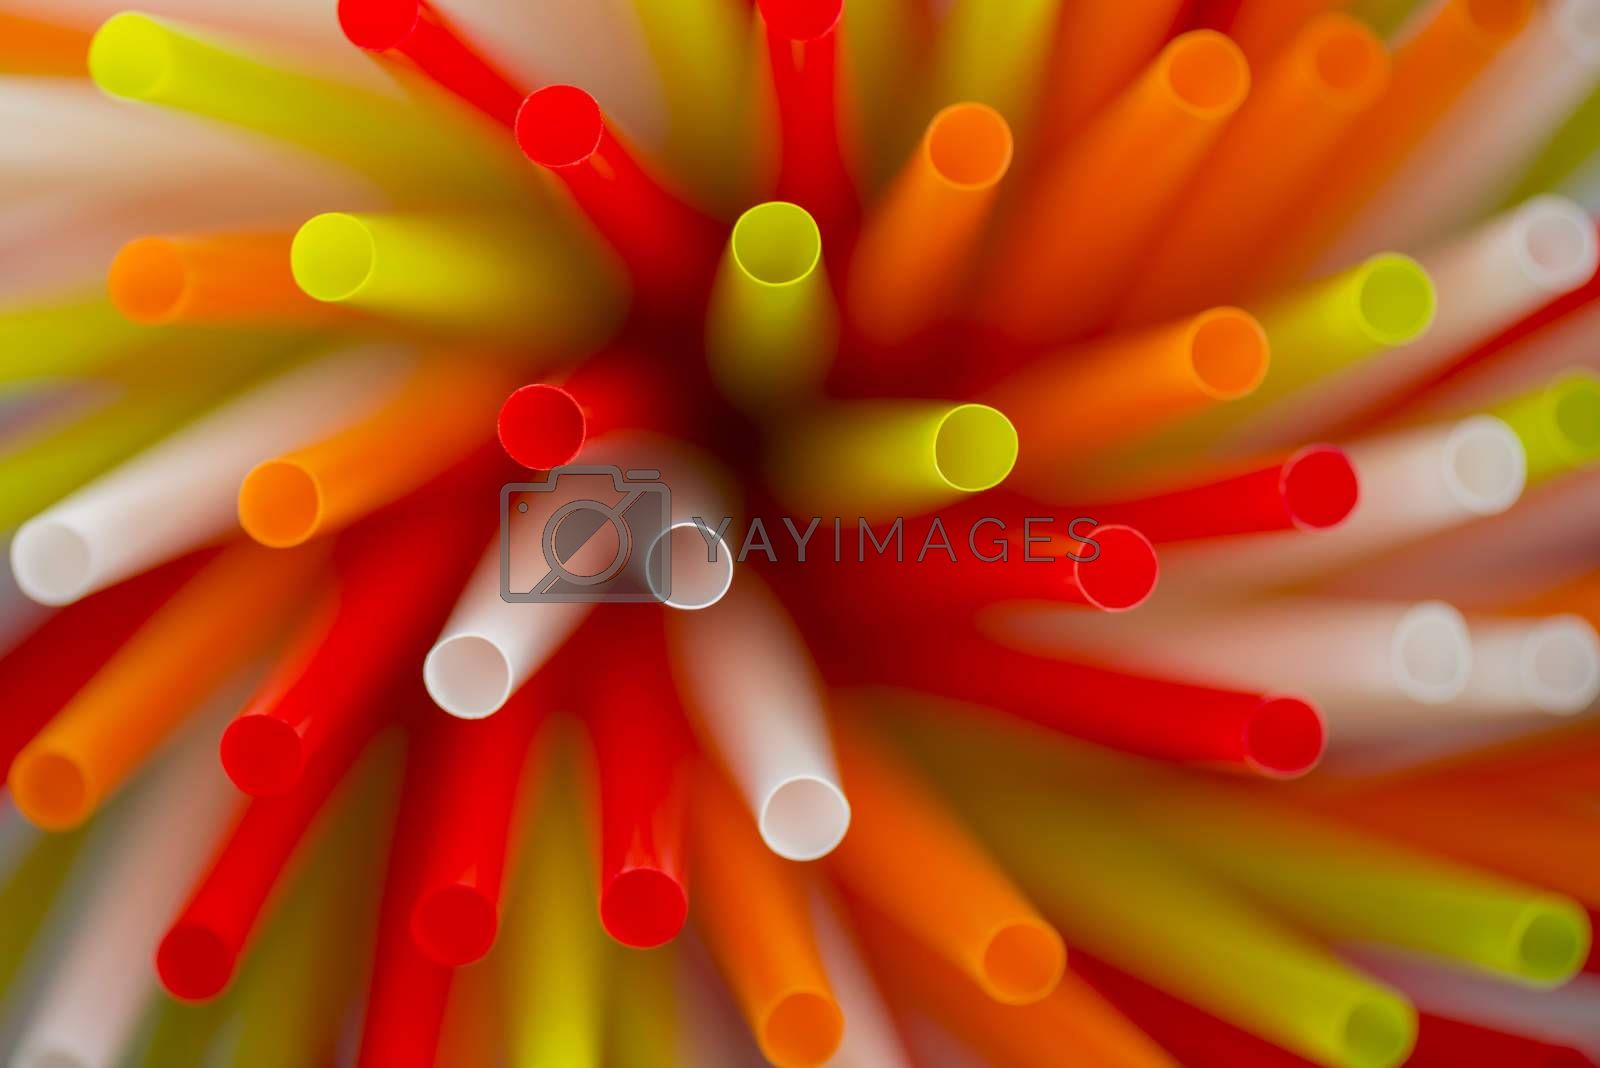 Collection colored drinking straws in blur  by Tofotografie